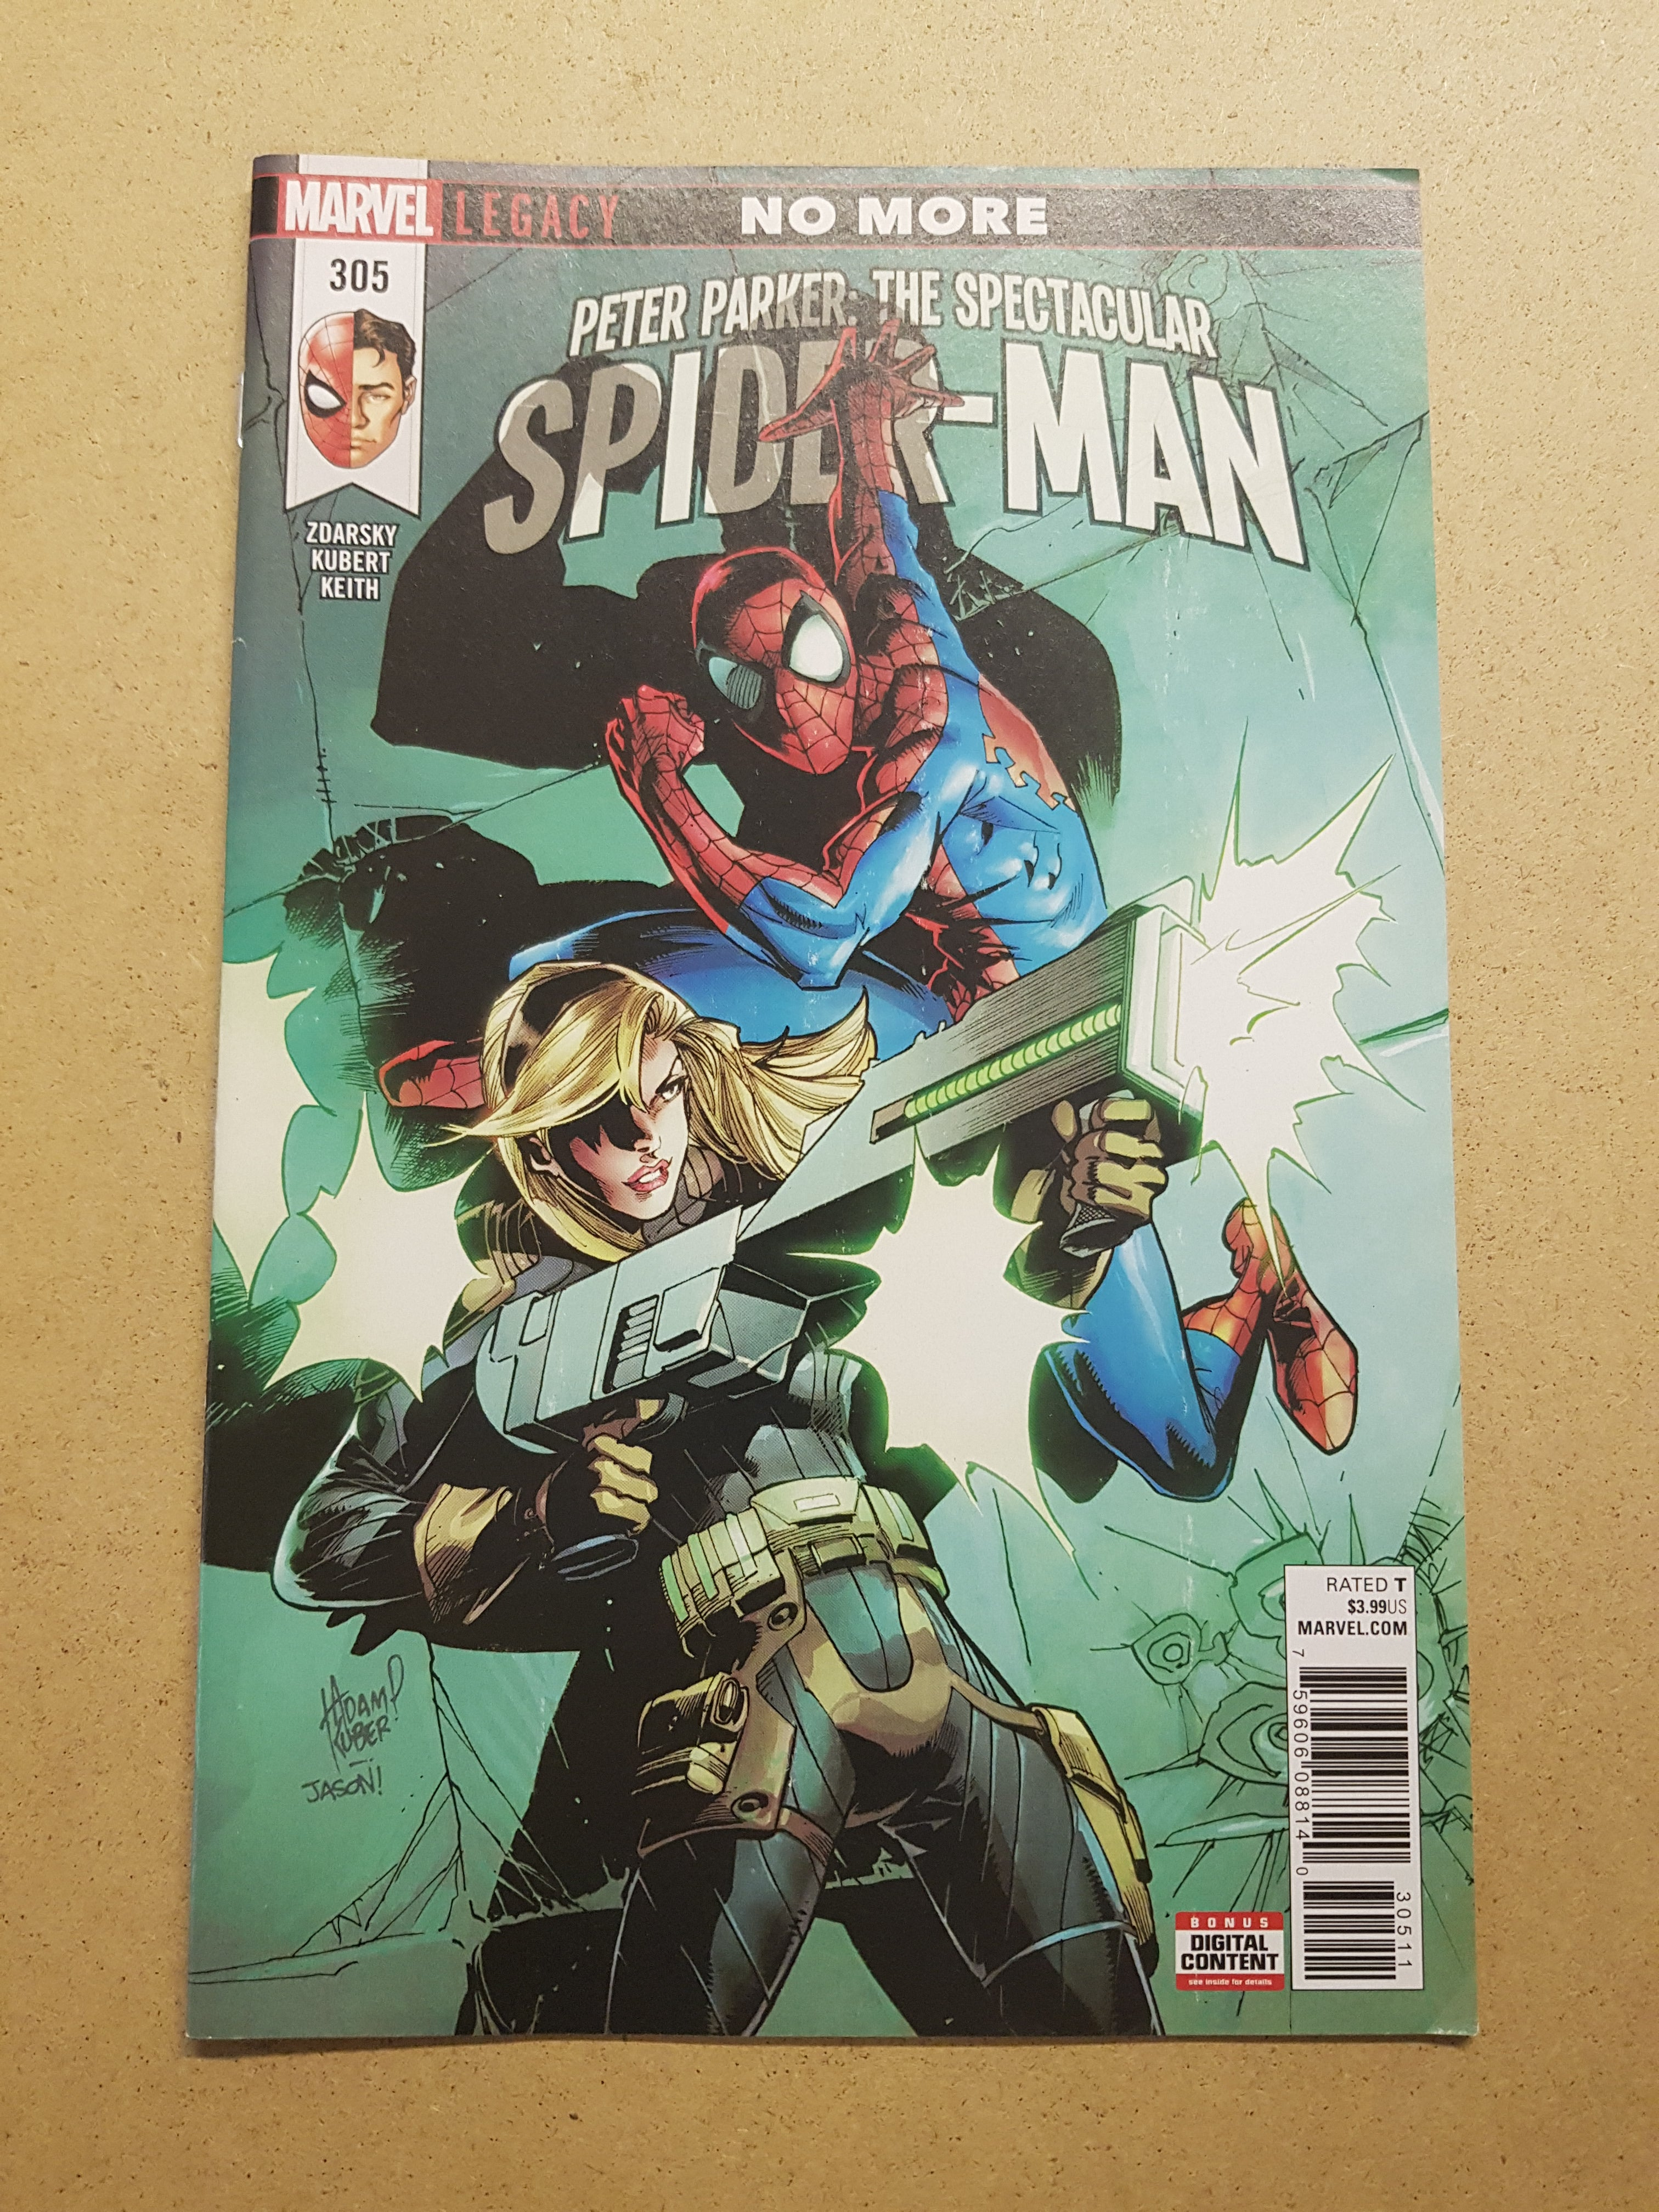 Peter Parker The Spectacular Spider-Man #305